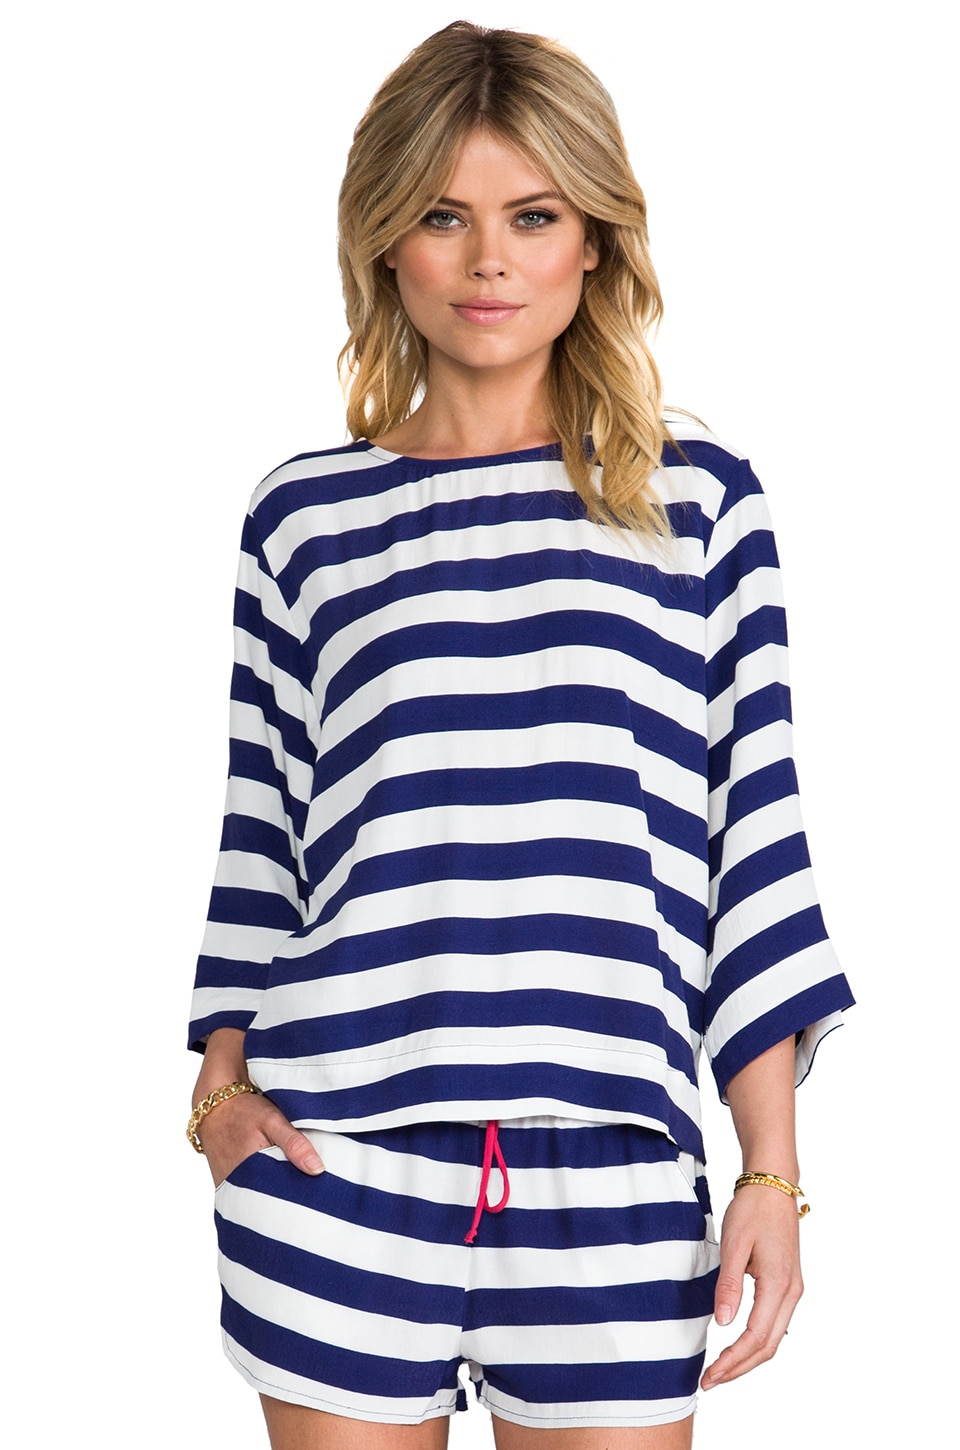 SAM&LAVI Lexington Top in Stripe